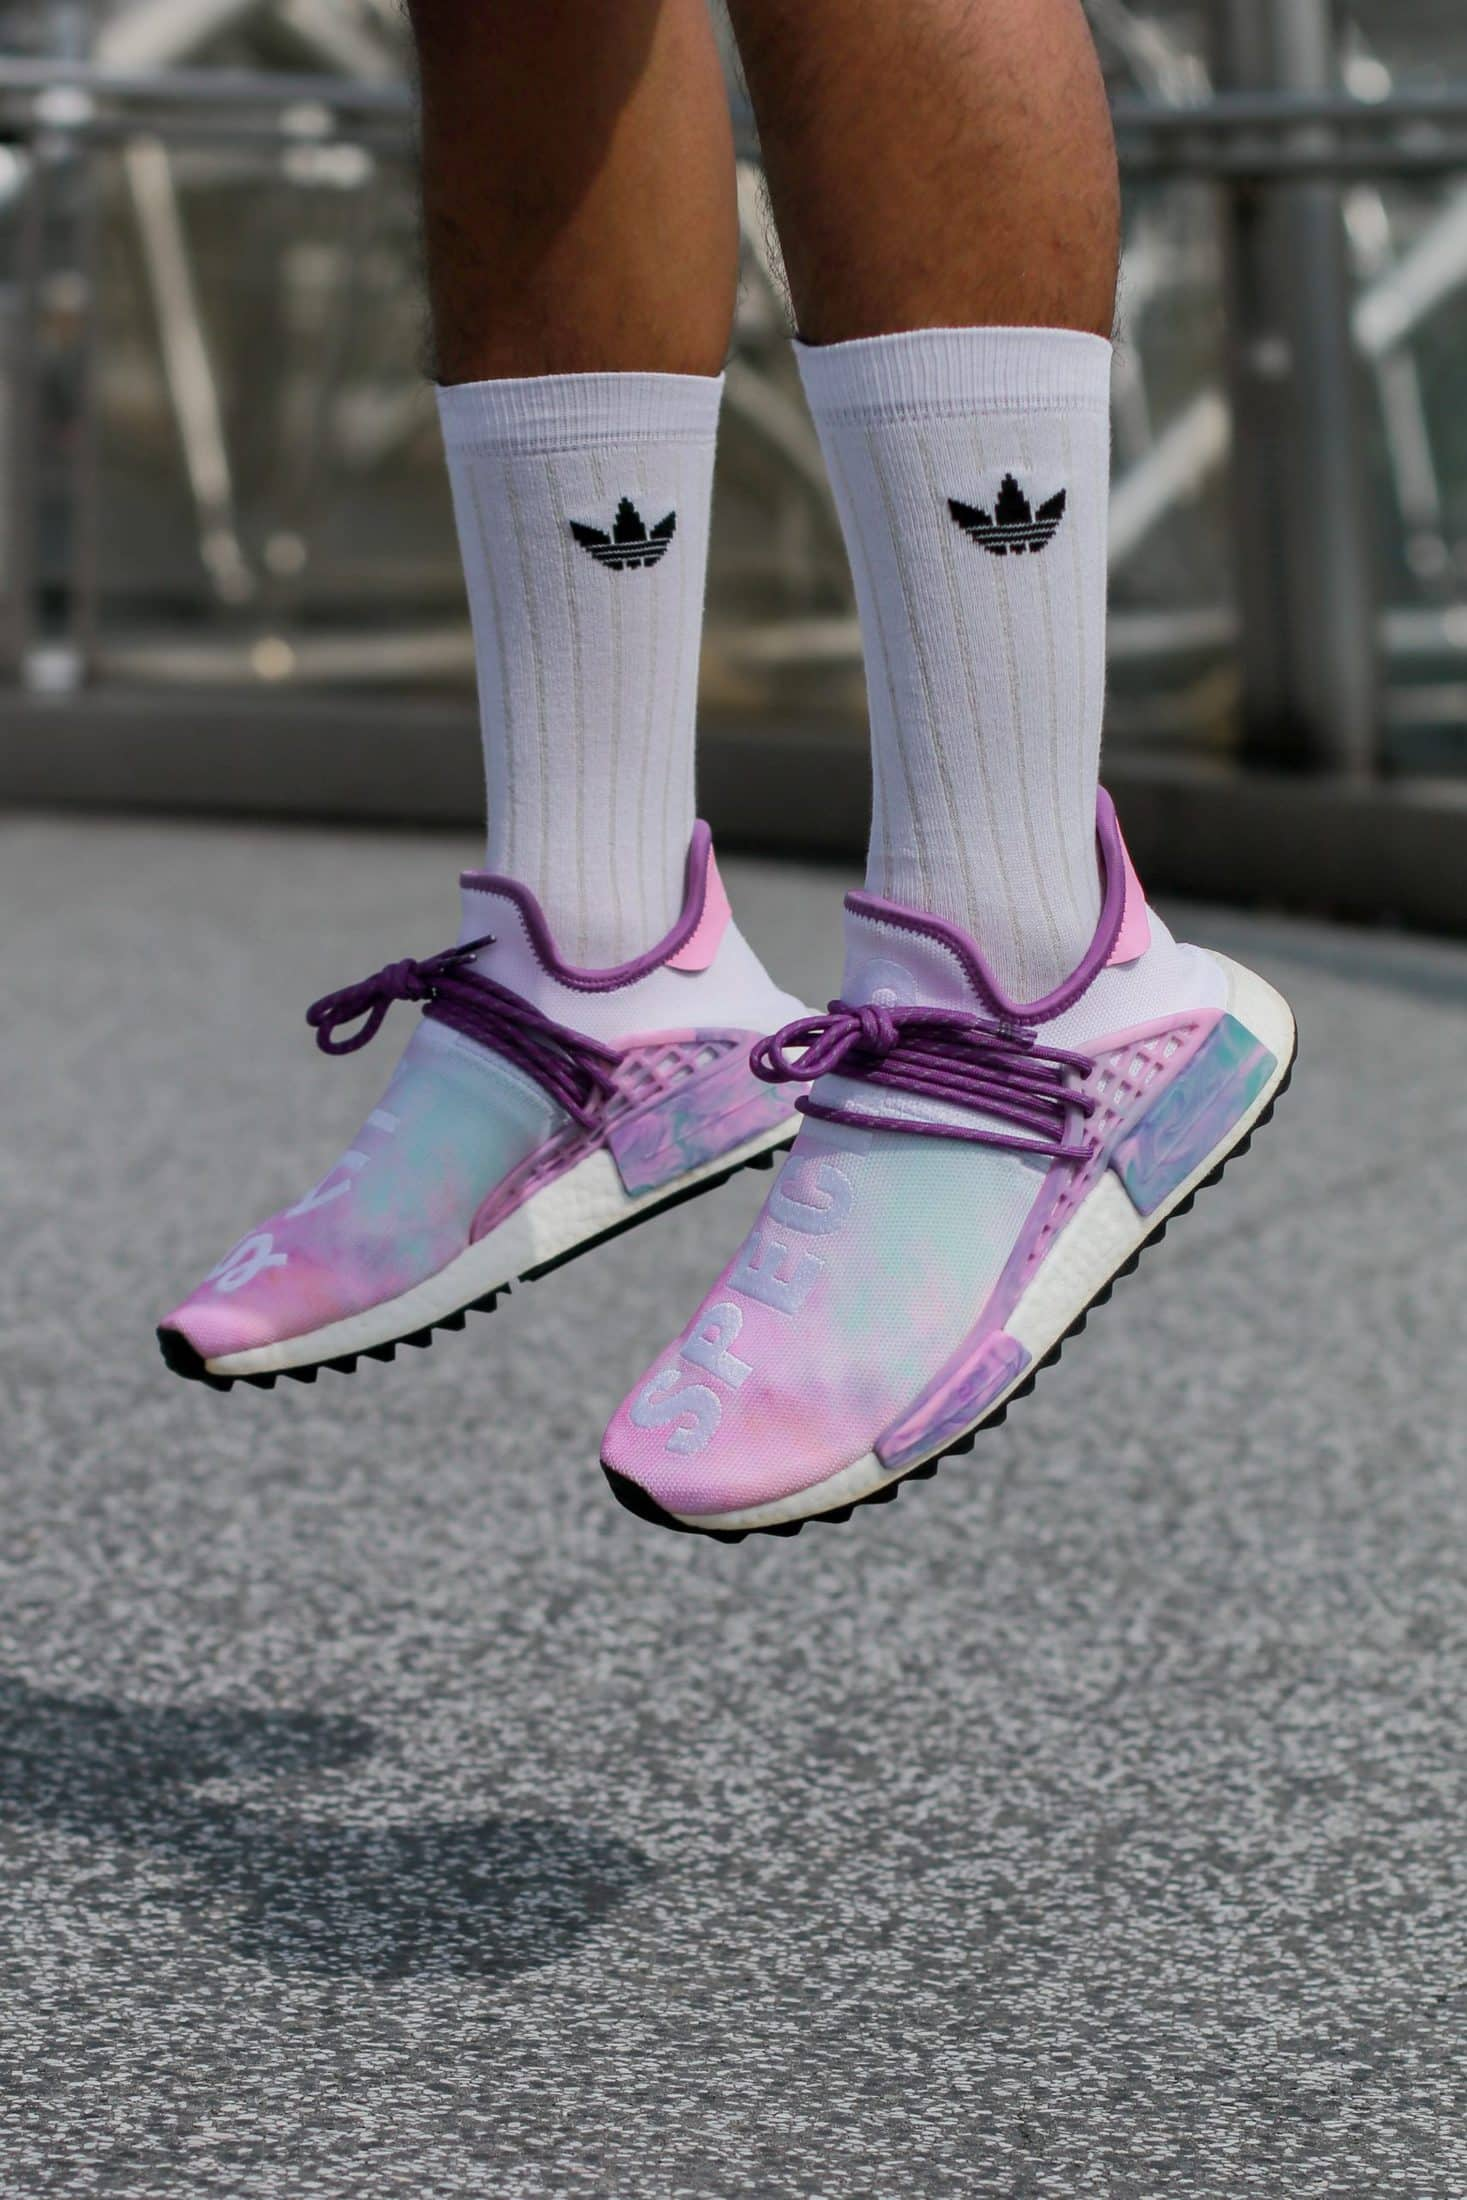 person in purple and white running shoes jumping on air